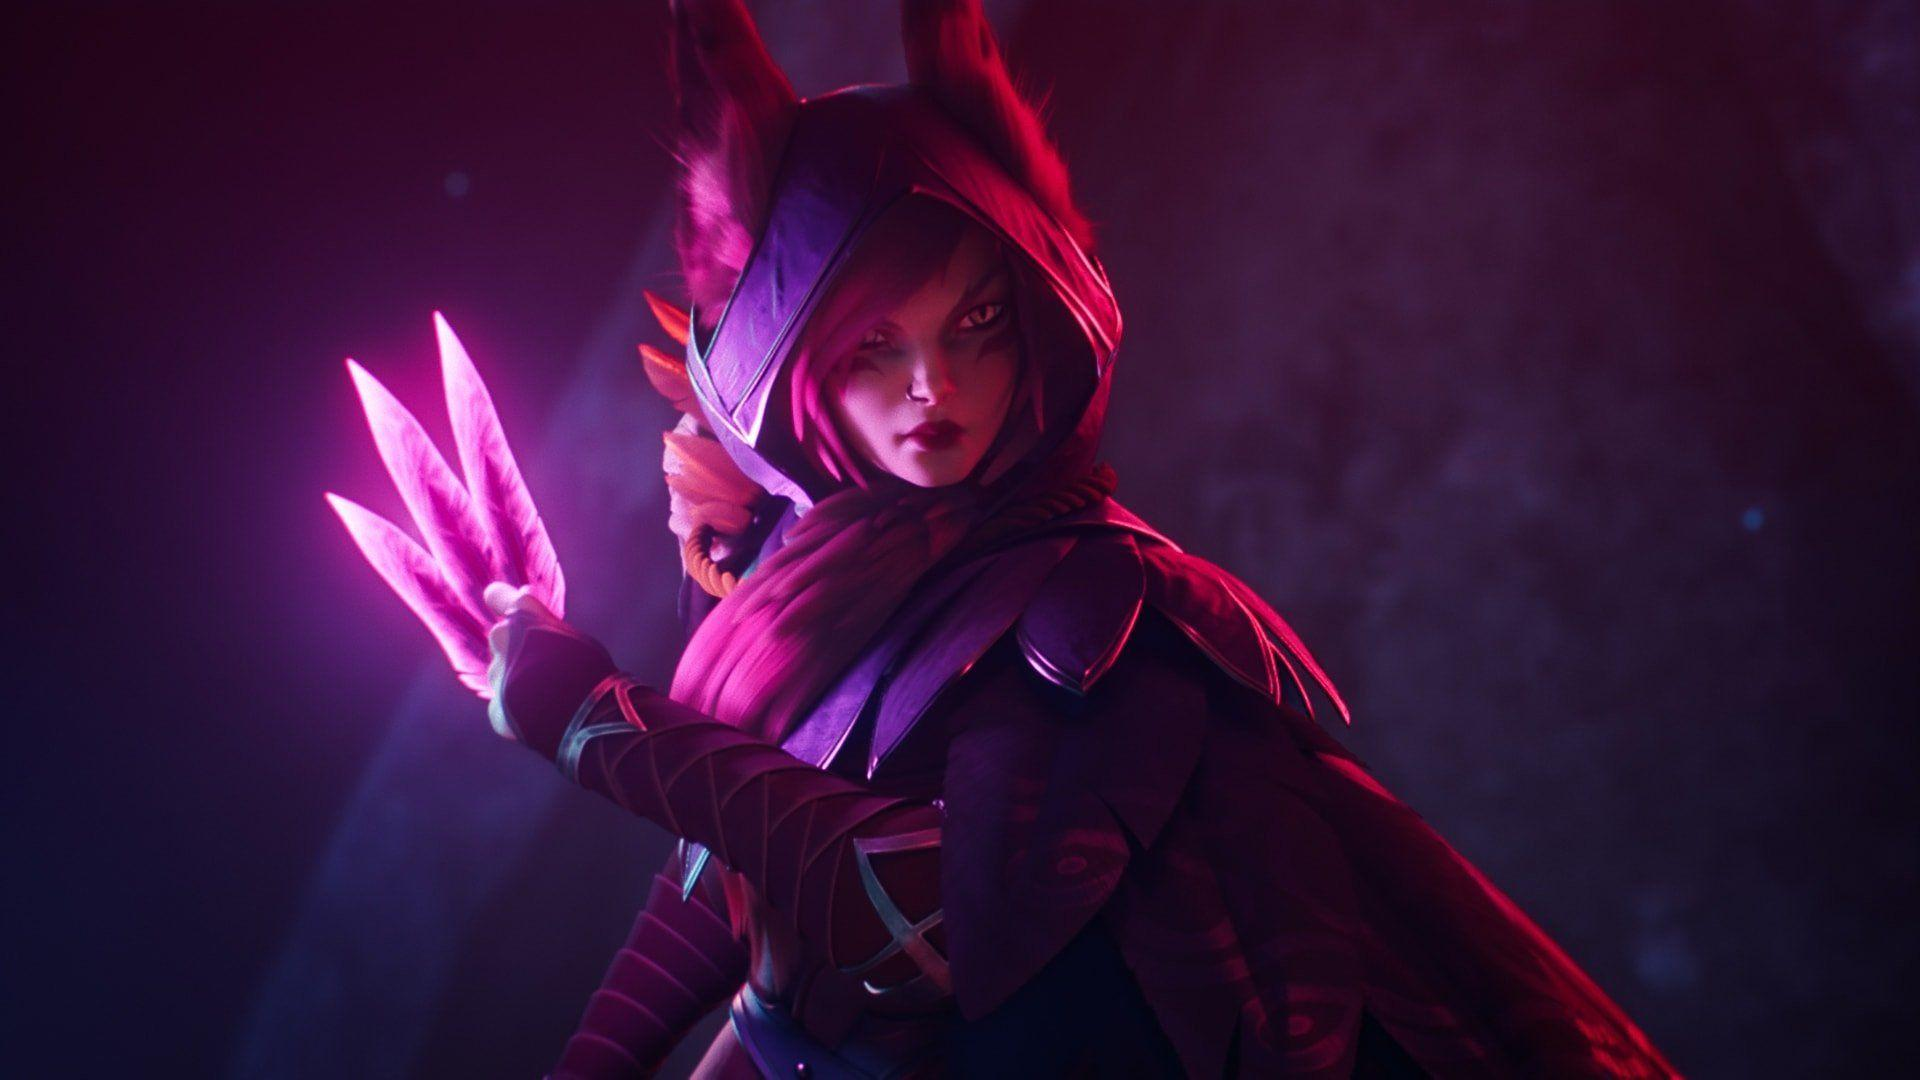 6 Xayah (League of Legends) HD Wallpapers | Backgrounds ...